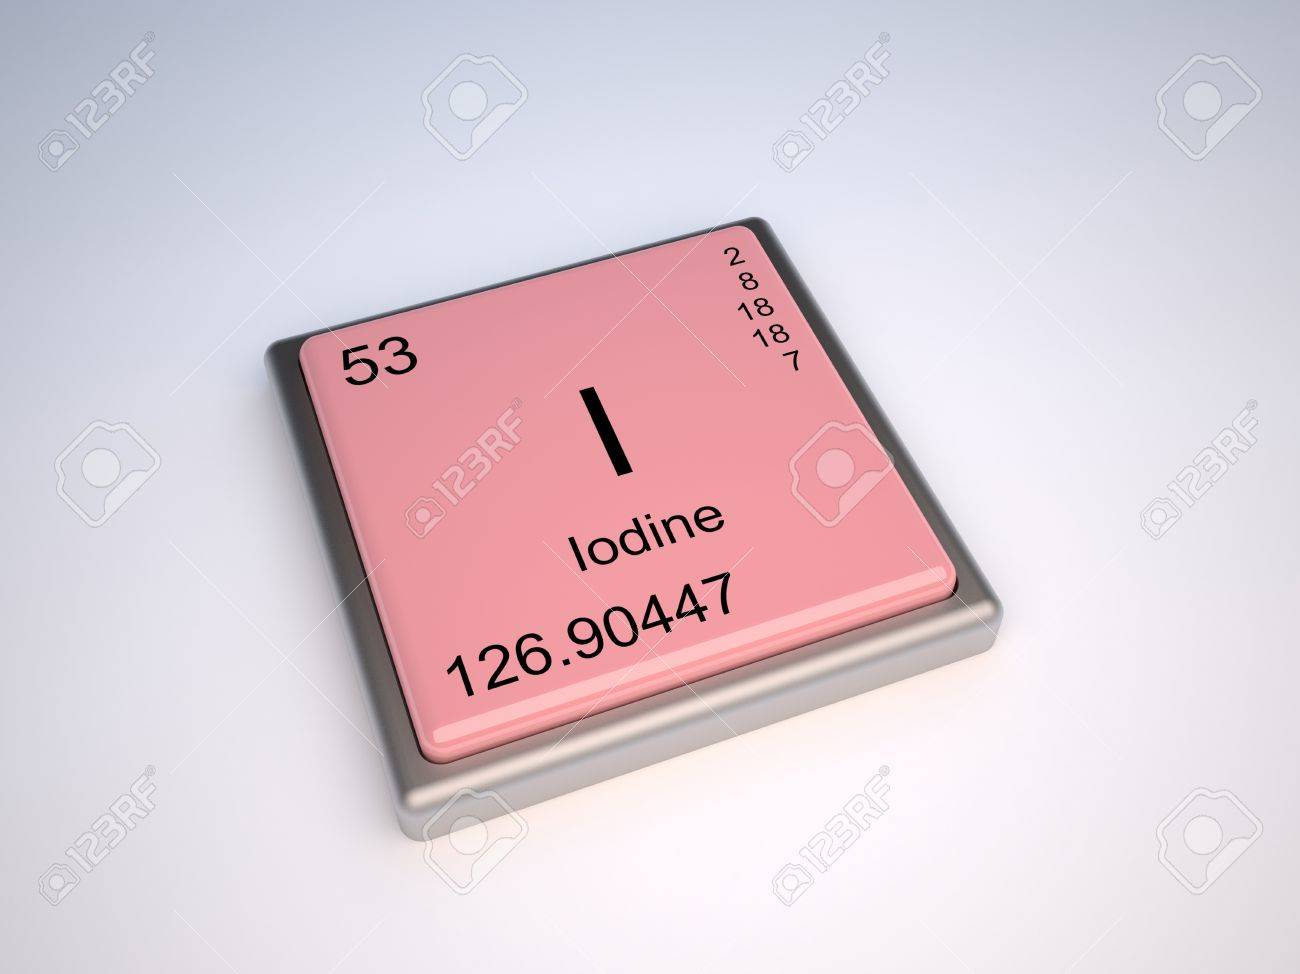 Iodine chemical element of the periodic table with symbol i stock iodine chemical element of the periodic table with symbol i stock photo 9257090 buycottarizona